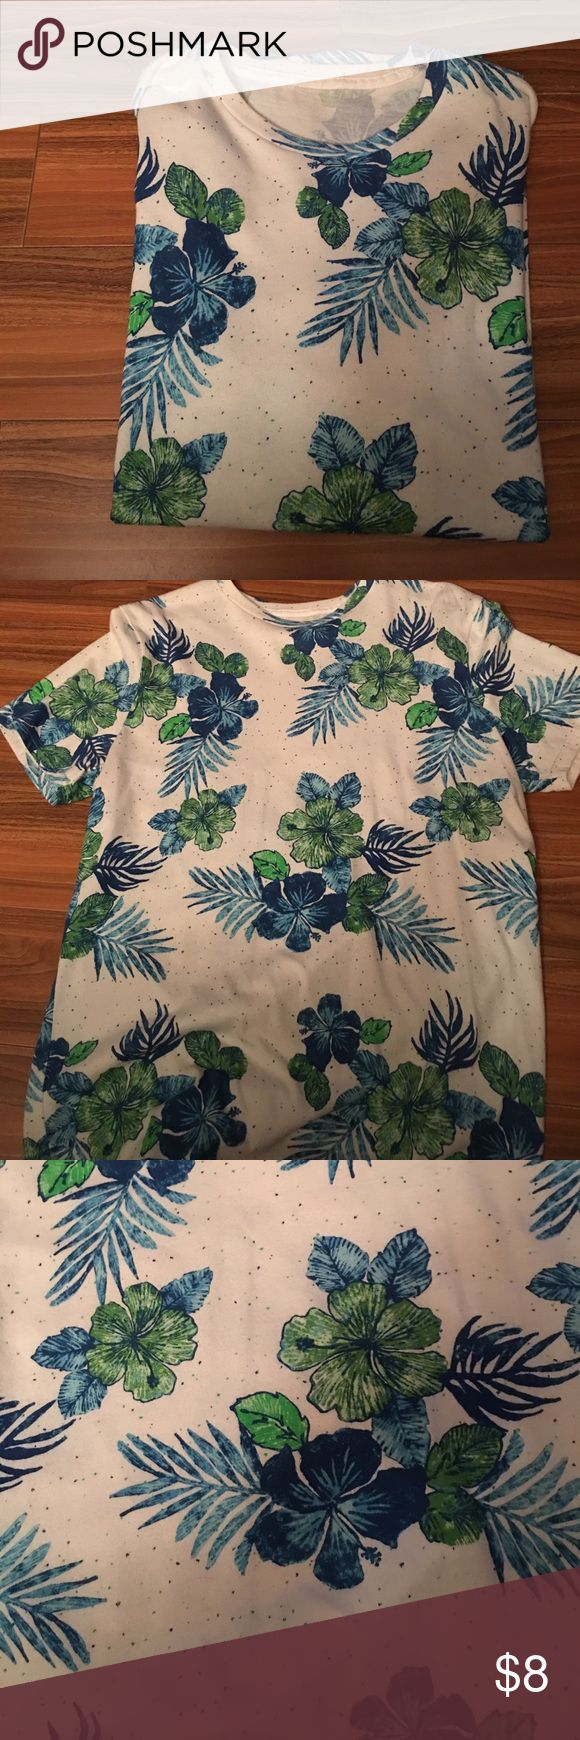 MENS WHITE BLUE GREEN HIBISCUS FLOWER SS T-SHIRT M PREOWNED MENS WHITE SHORT SLEEVE BLUE AND GREEN HIBISCUS FLOWER PRINT T-SHIRT PREOWNED IN GOOD CONDITION Shirts Tees - Short Sleeve